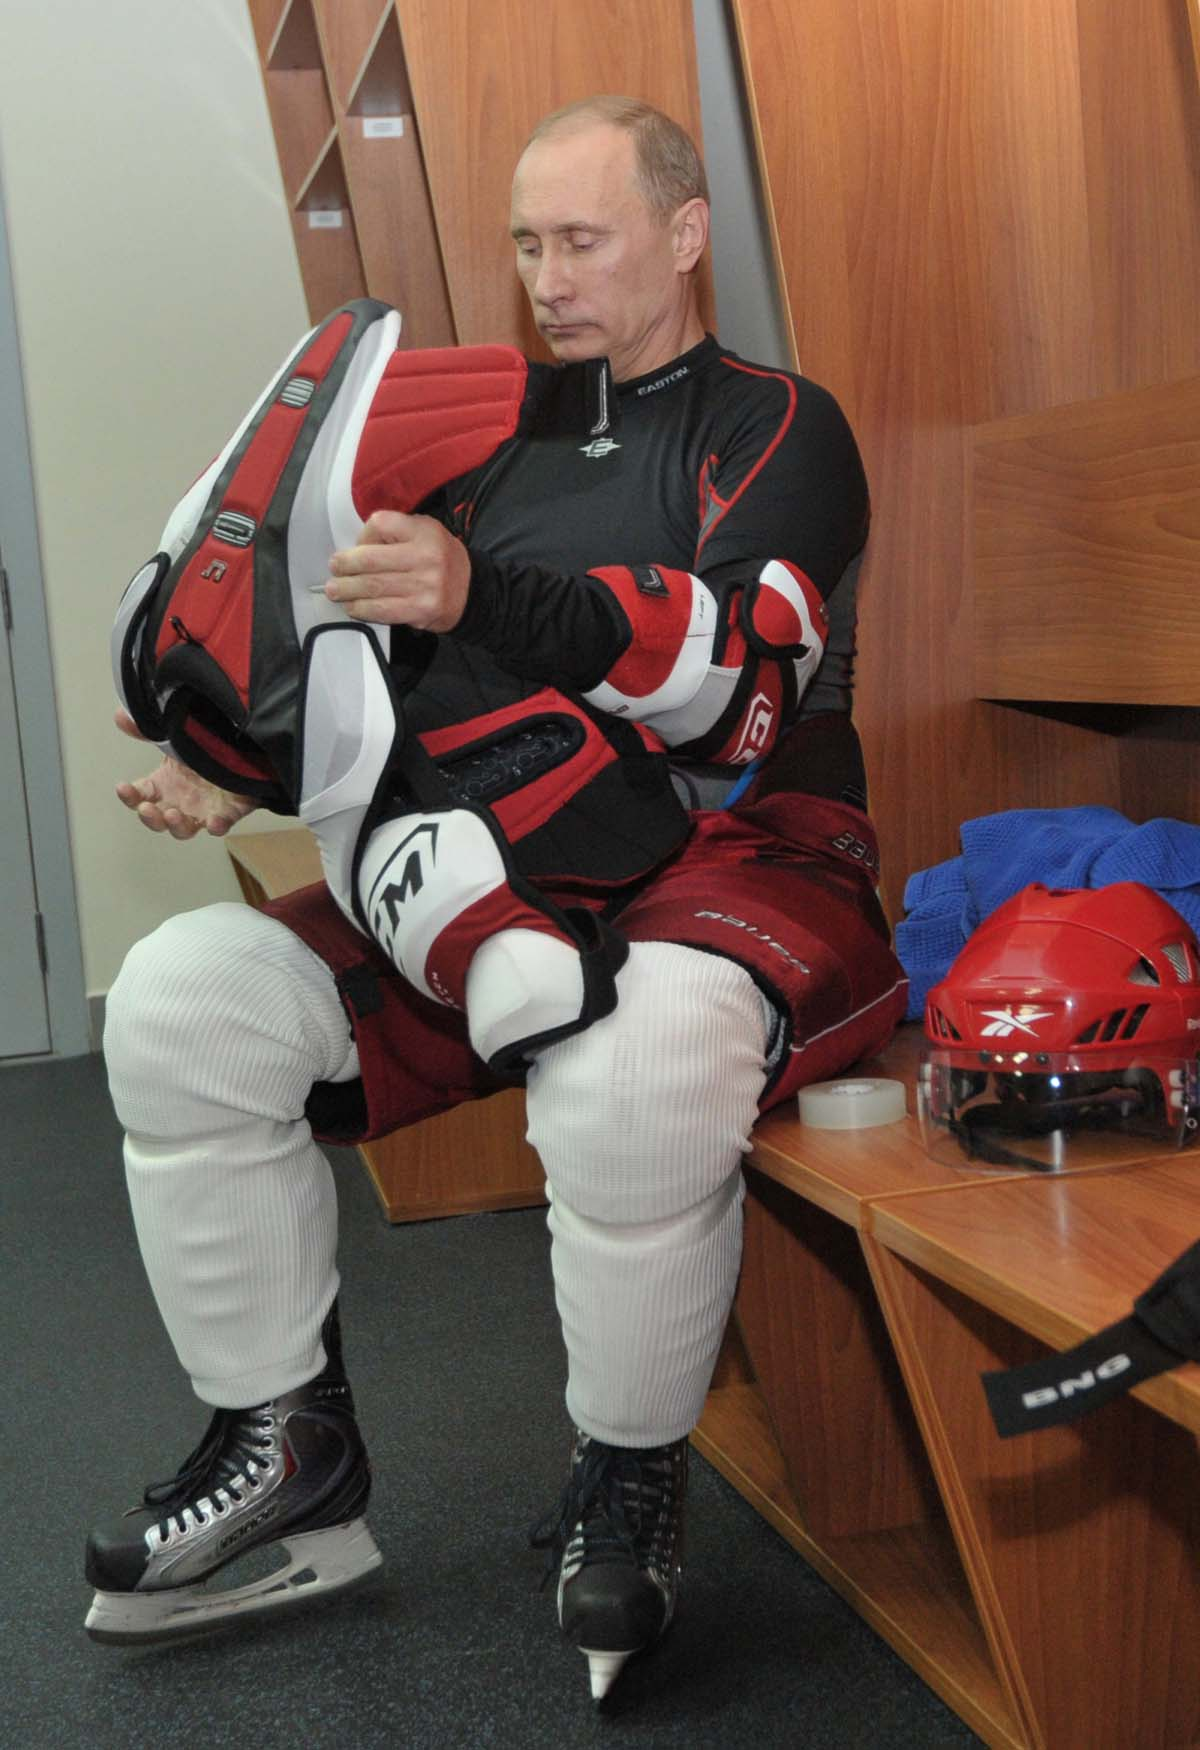 hockey in russia T j oshie scored four times in the shootout to give the united states men's hockey team a victory over russia in preliminary play at the sochi olympics.